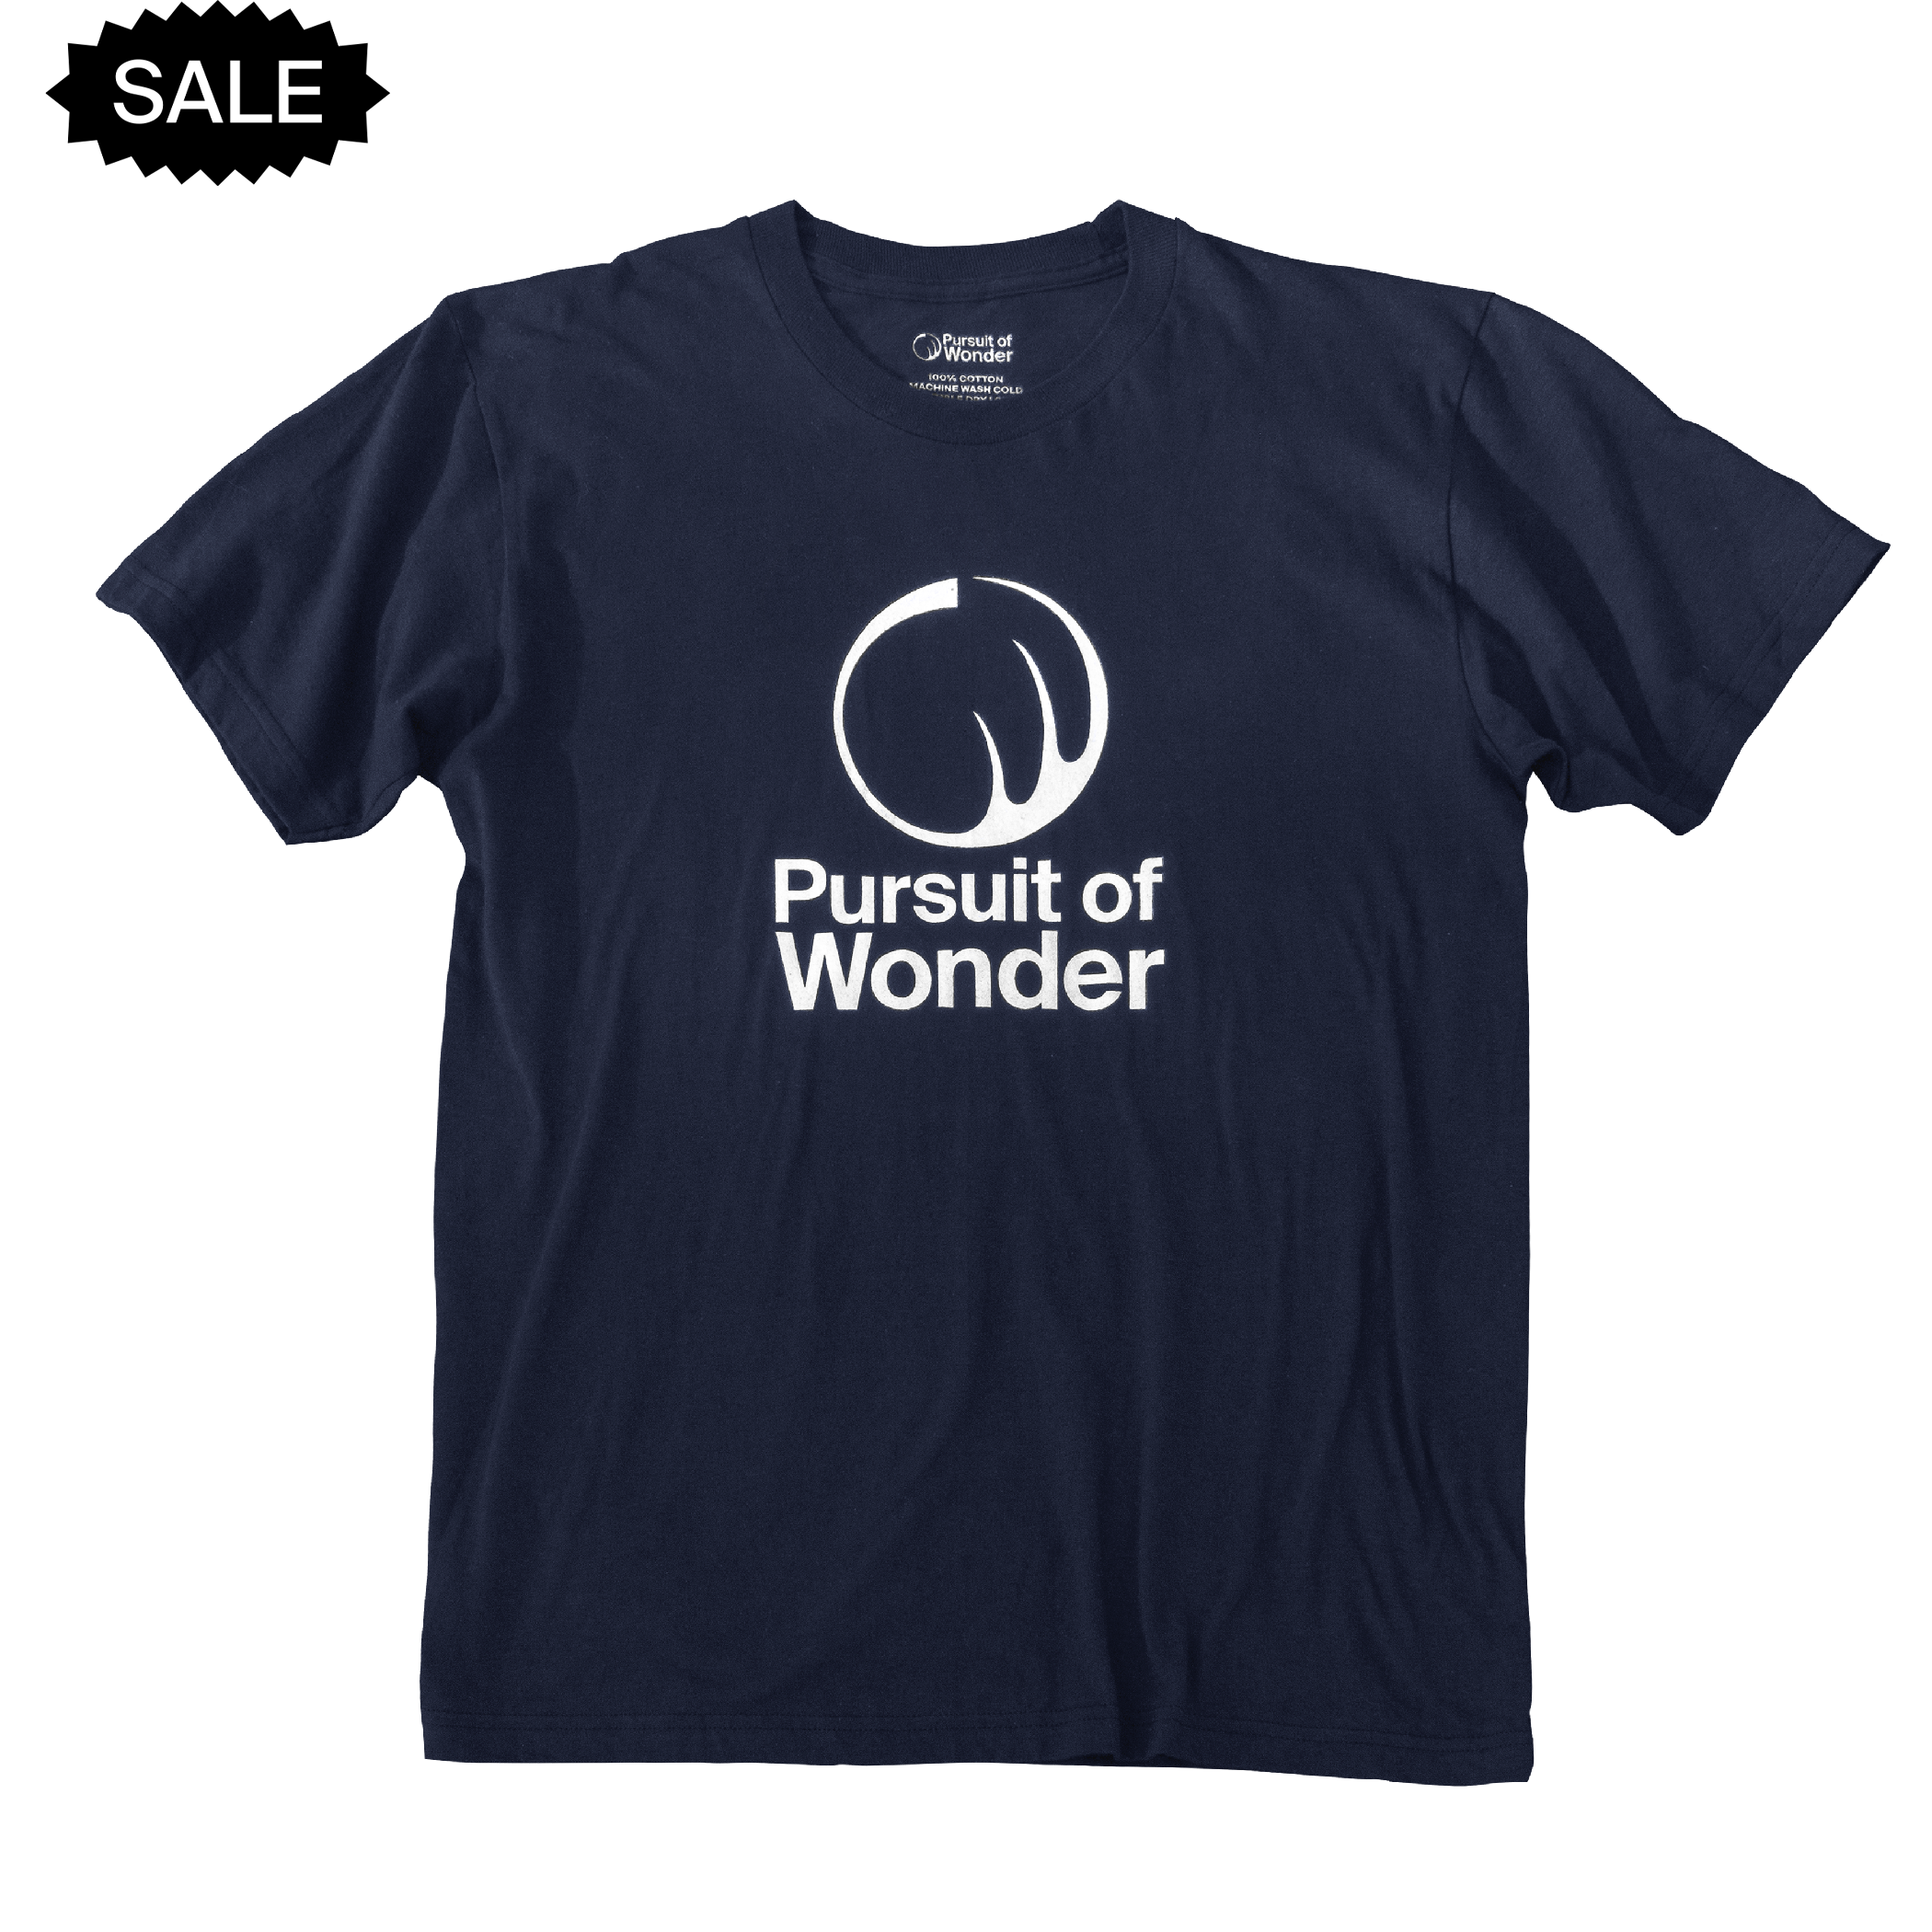 Short sleeve shirt available in white, navy, and cranberry. Features the brand-new Pursuit of Wonder logo. Graphic is printed in white on navy and cranberry shirts and in black and blue on white shirts.